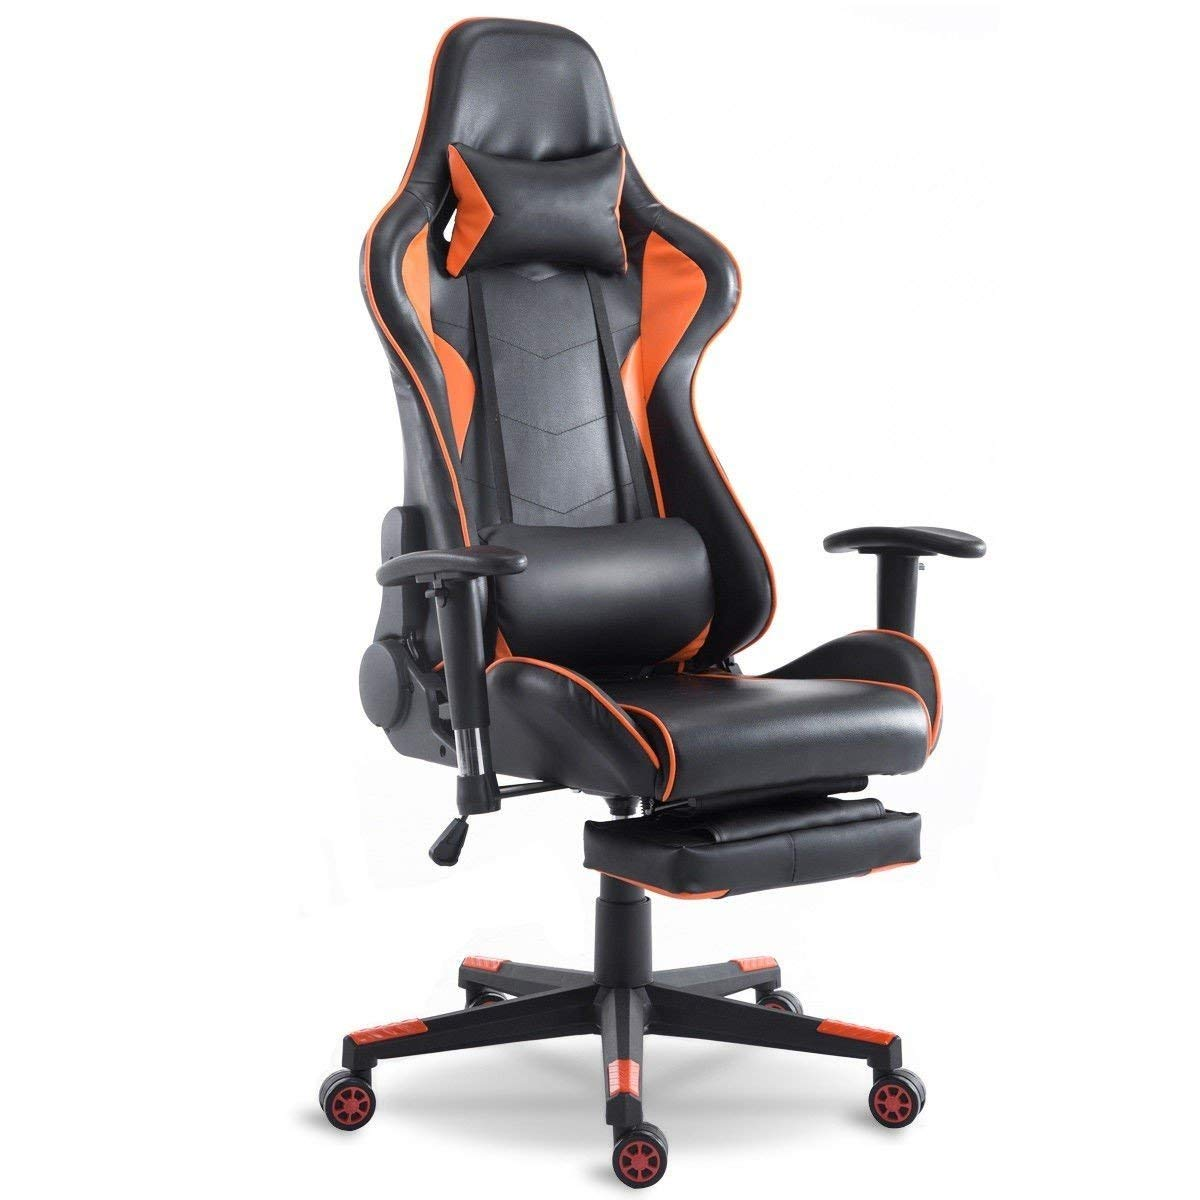 Svitlife Orange High Back Racing Recliner Gaming Chair with Footrest Gaming Chair Footrest Office Comfort 1pc Us Gameroom